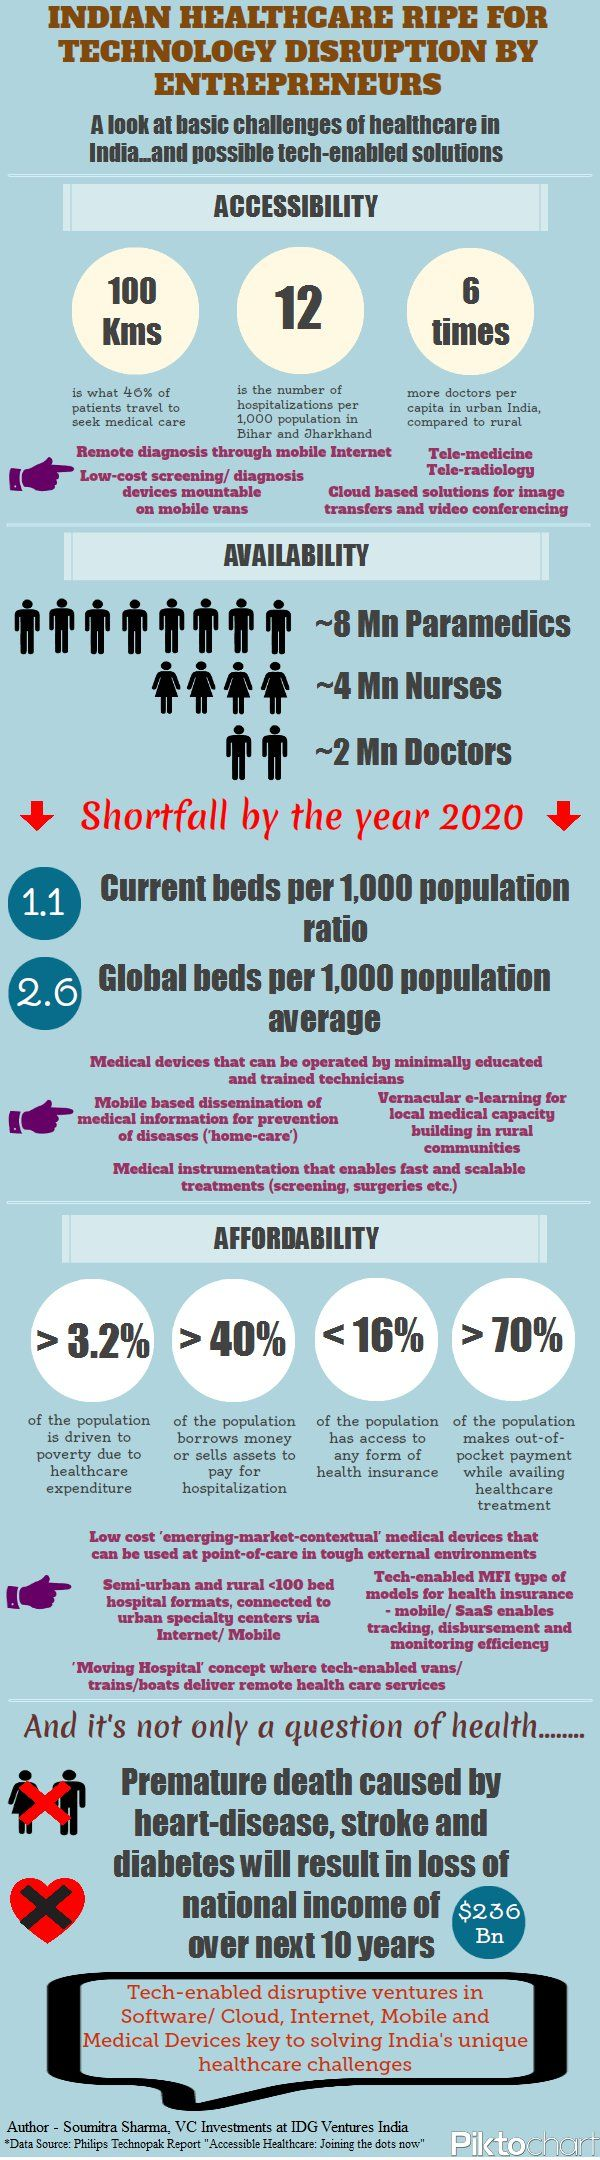 Why is Healthcare the Next Big Thing in India? [Infographic]